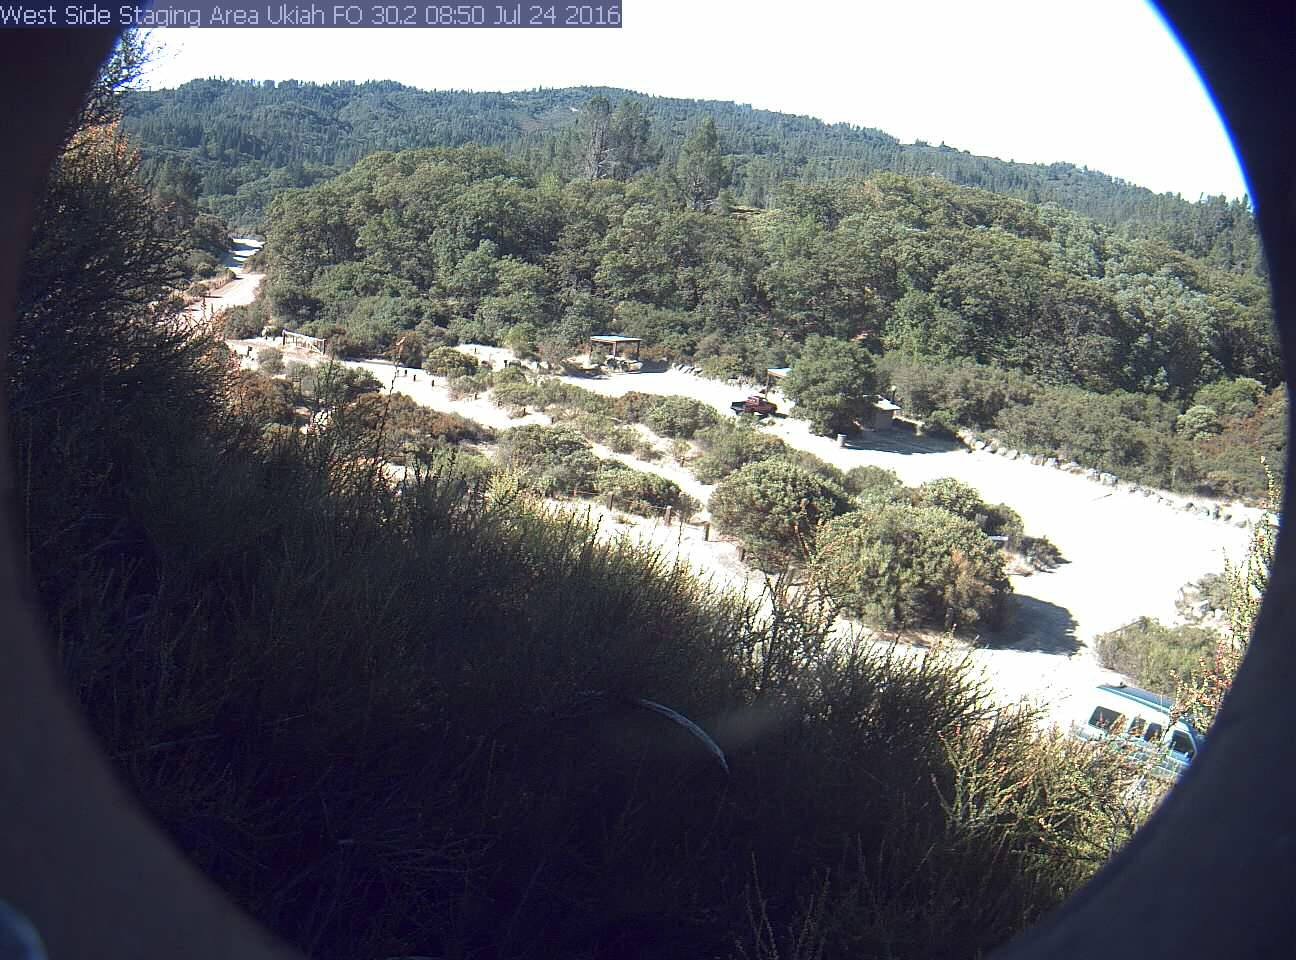 Thumbnail of automatically archived image from live webcam; click for larger image.